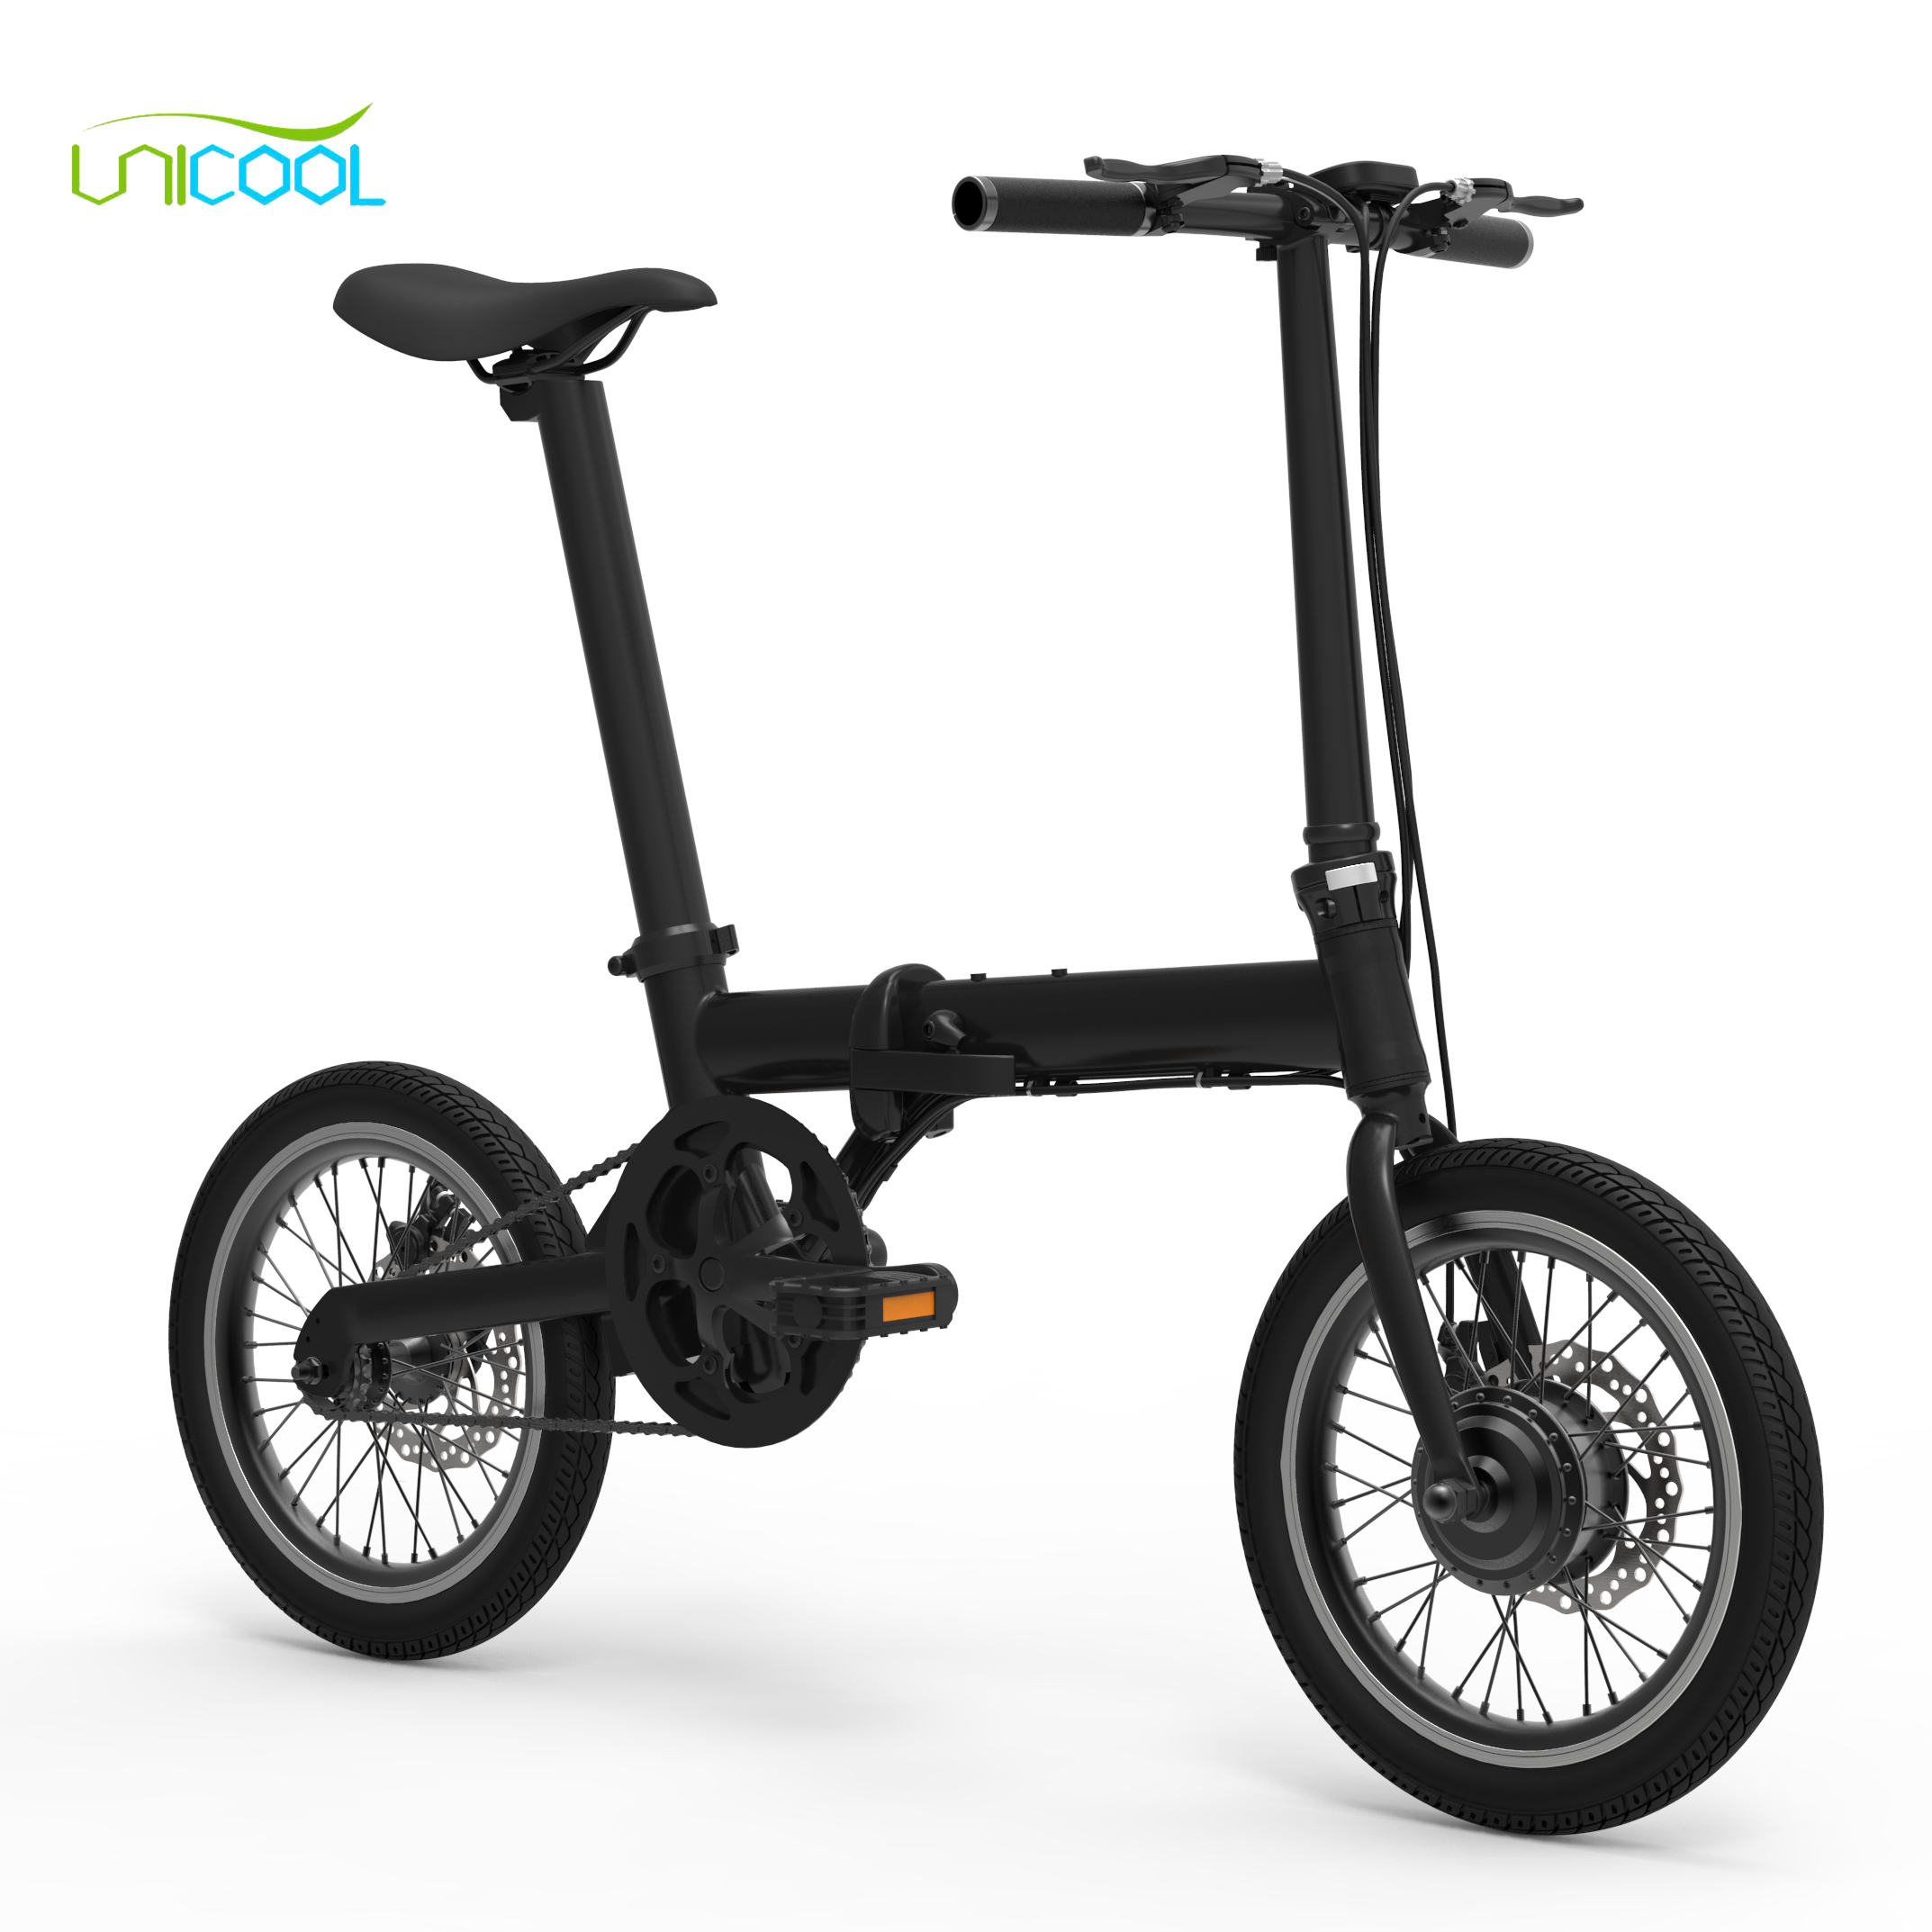 New Products 2019 Unicool Lithium Battery <strong>Folding</strong> E Bike/<strong>Folding</strong> Electric Bike/Mini Bicycle/Foldable Ebike 250W